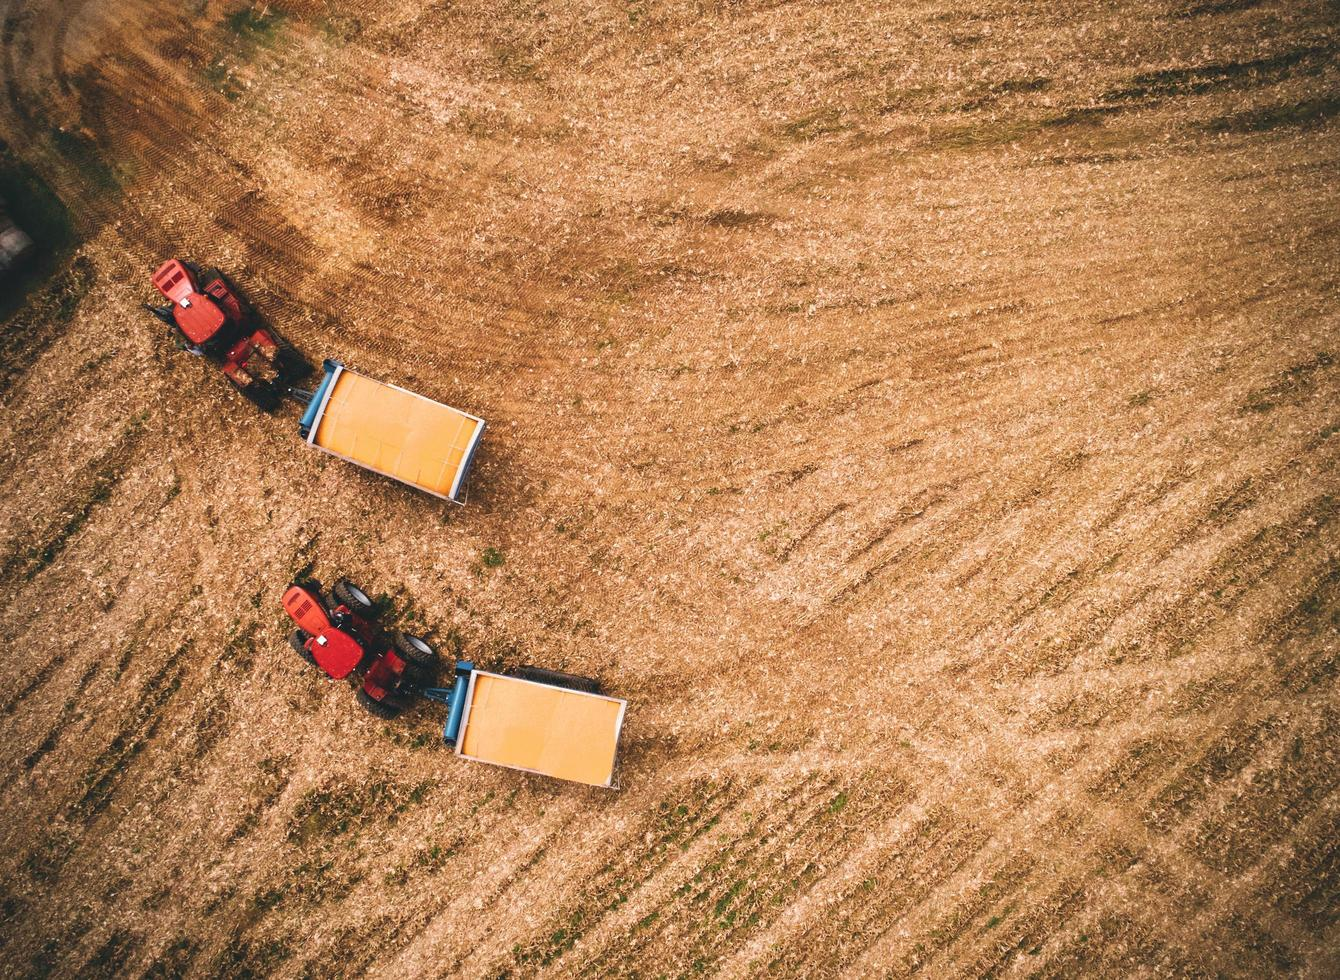 Red tractors on field photo